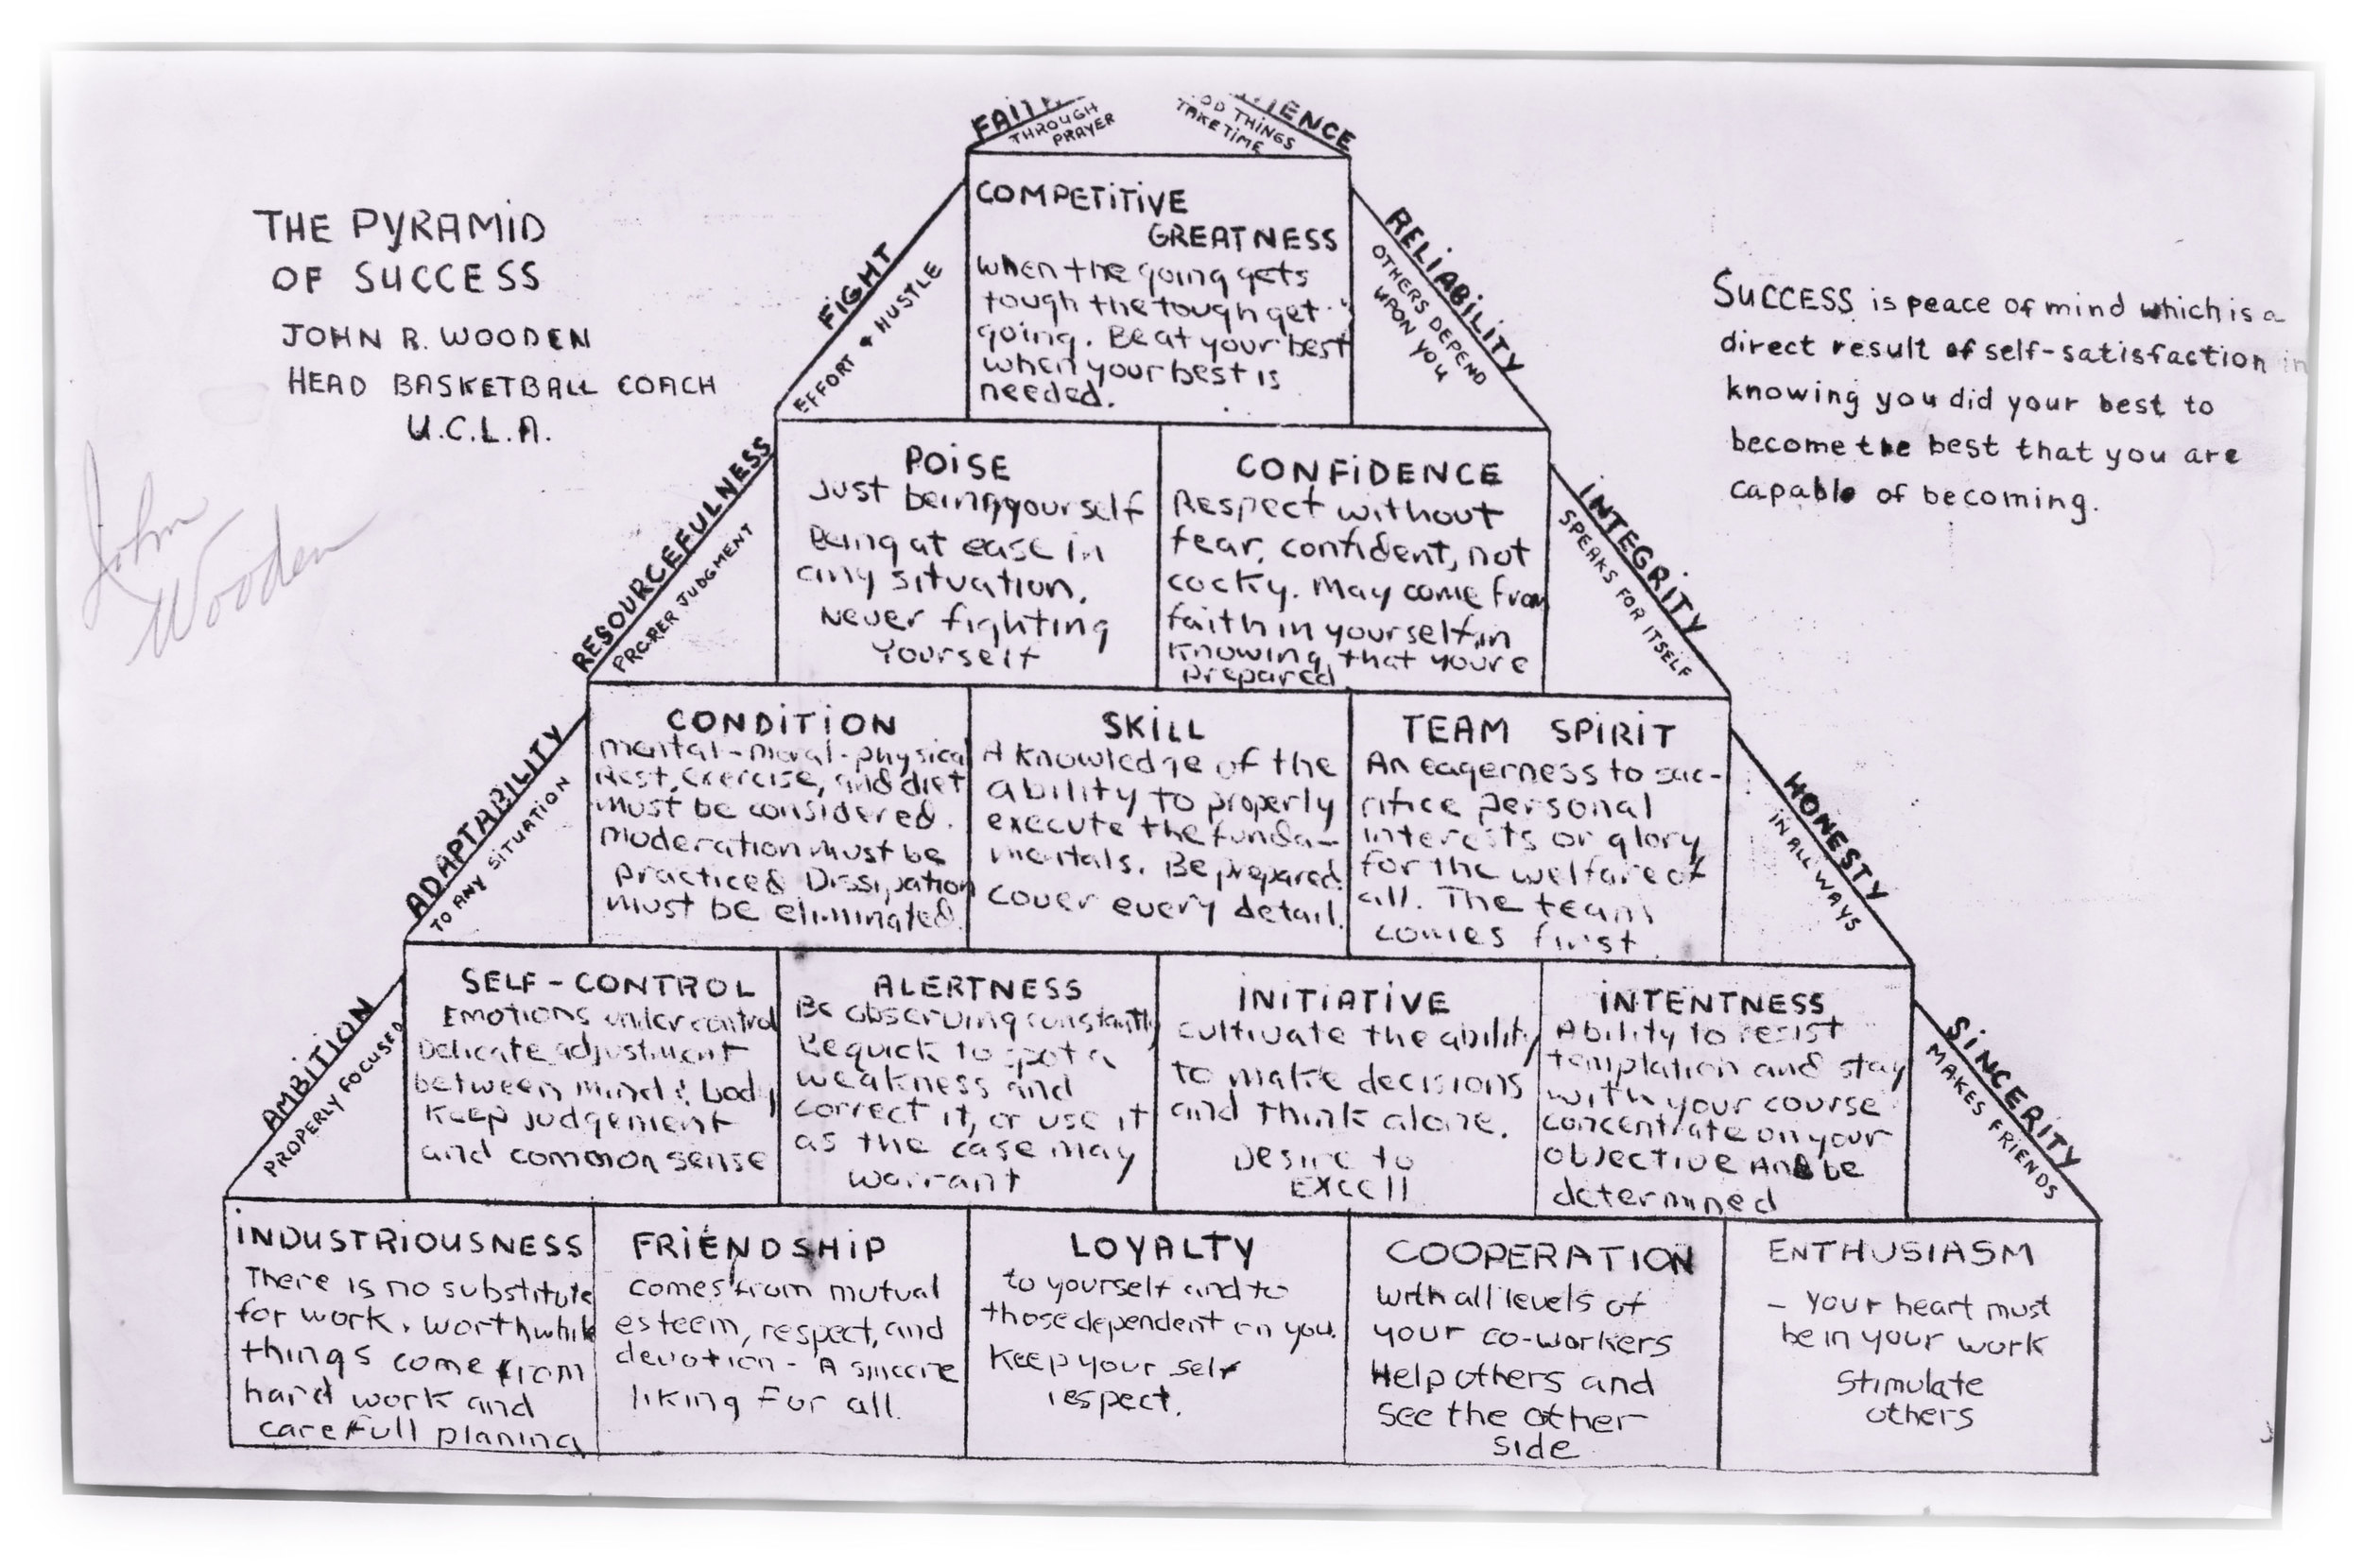 Image of Coach Wooden's Pyramid of Success - Signed at Westchester Park, Los Angeles, CA circa 1967